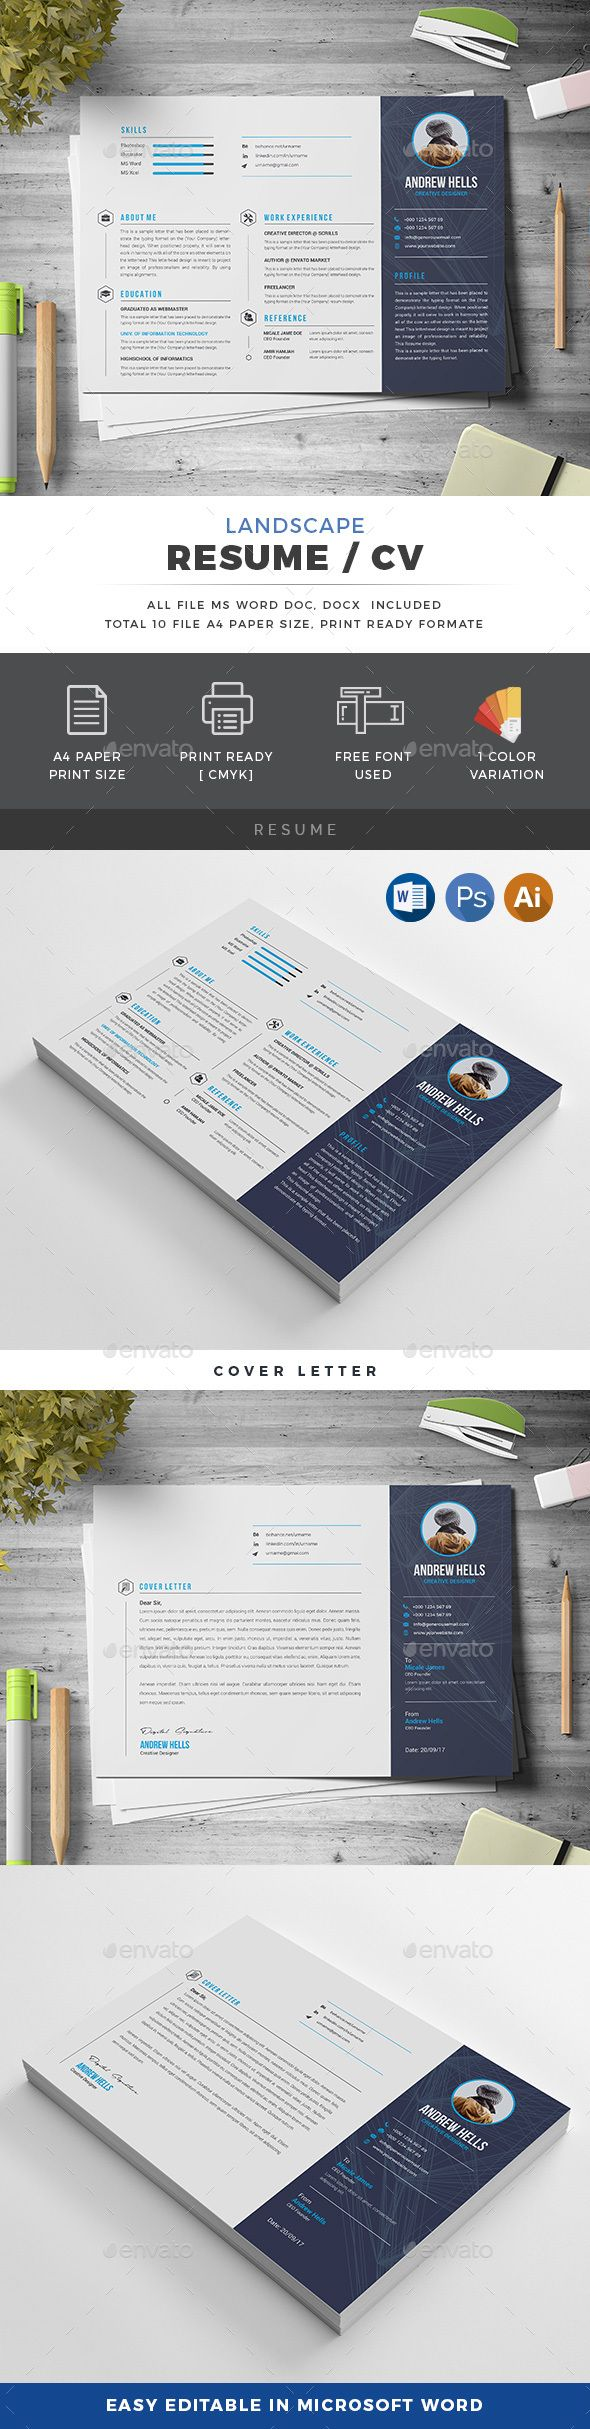 Landscape Resume 104 best Resume images on